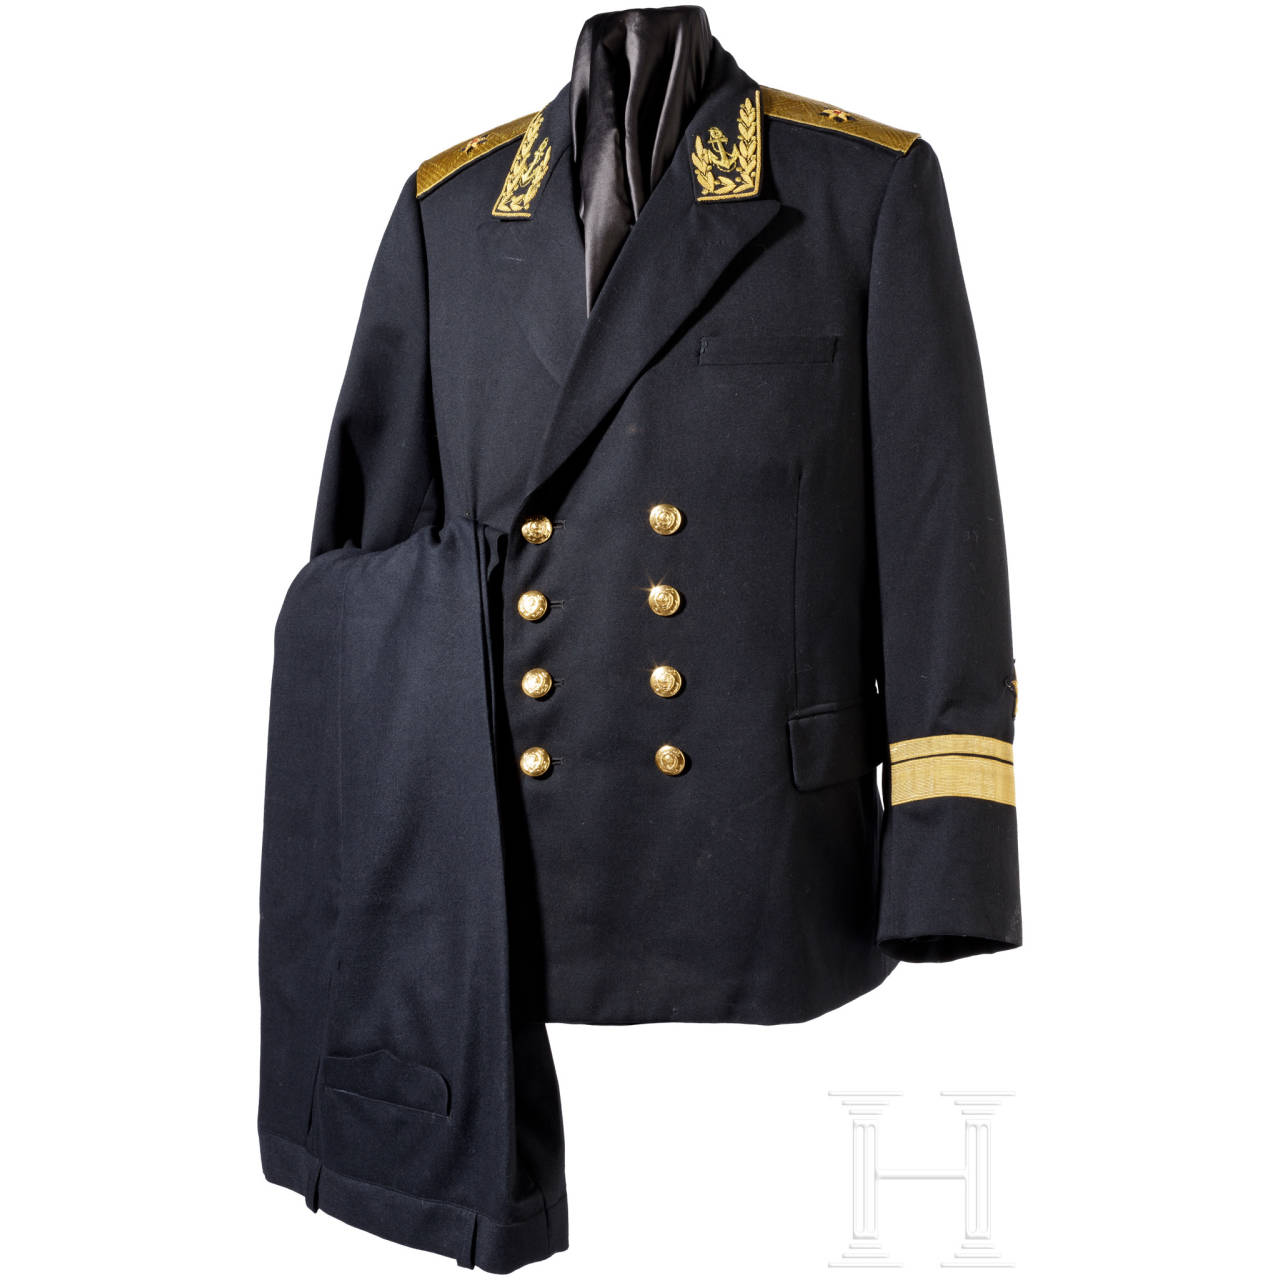 Parade uniform and summer jacket for an admiral, Soviet Union since 1945